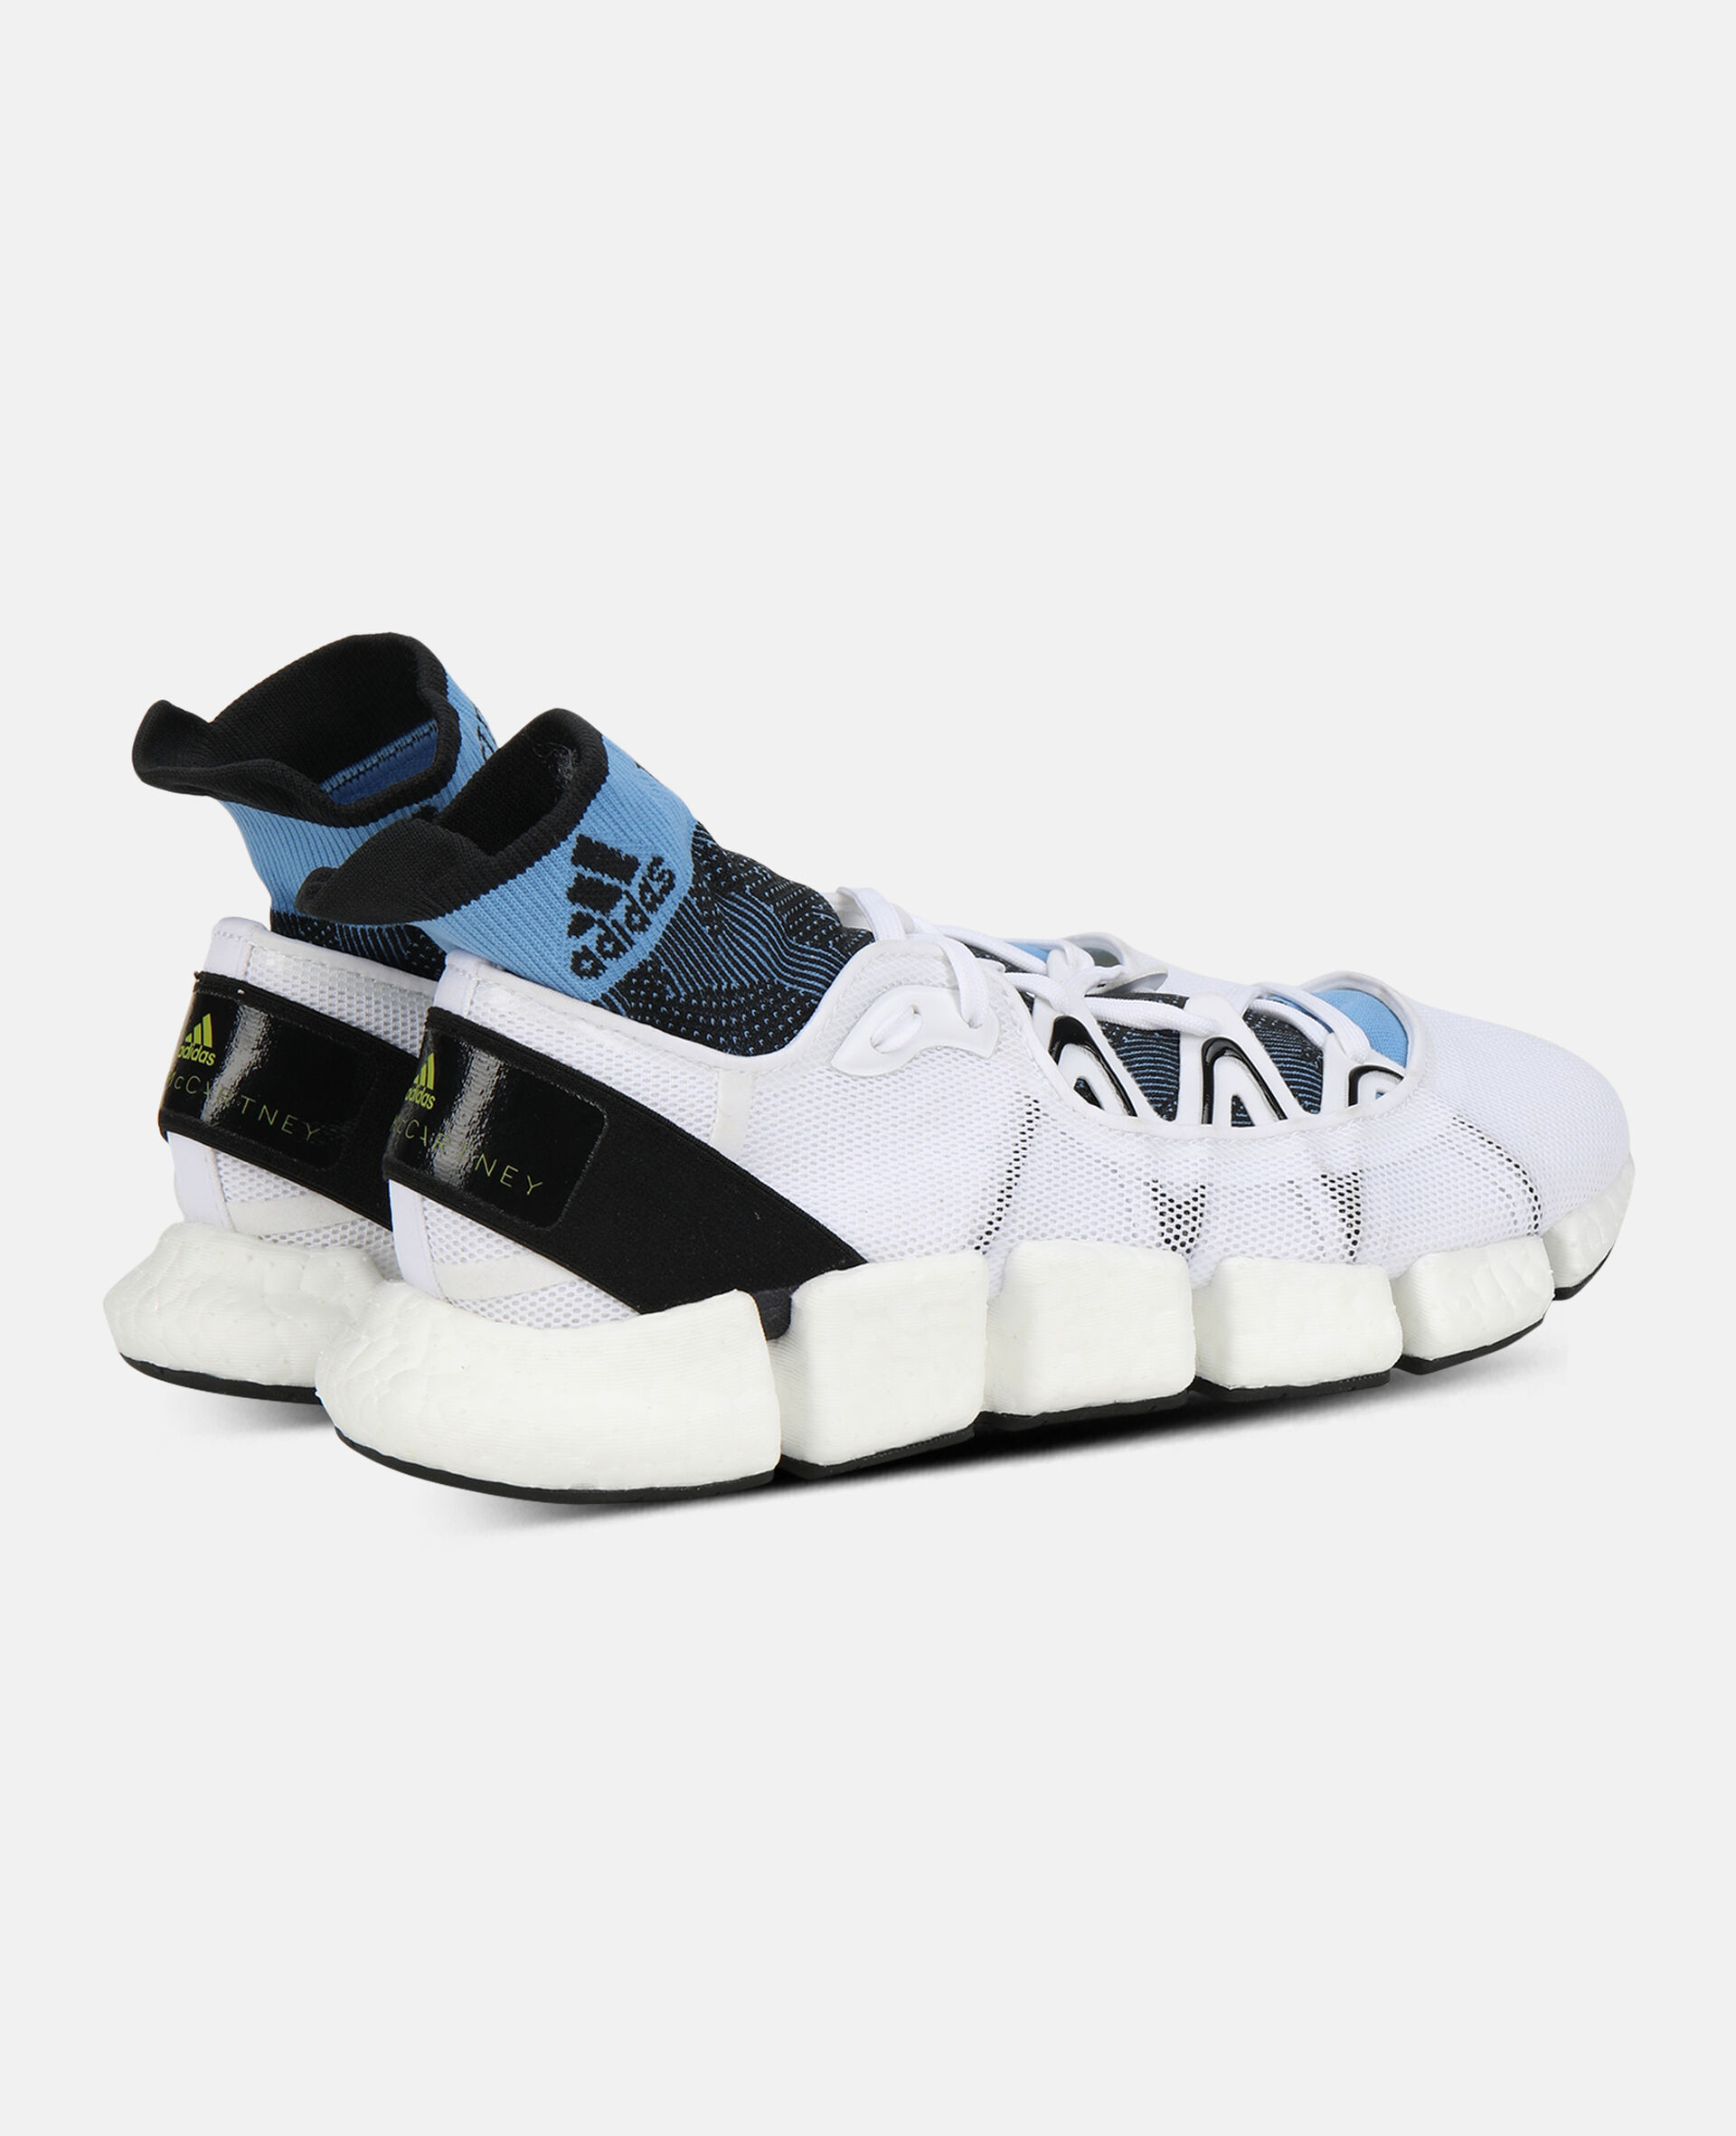 Climacool Vento 3-in-1 Sneakers -White-large image number 4